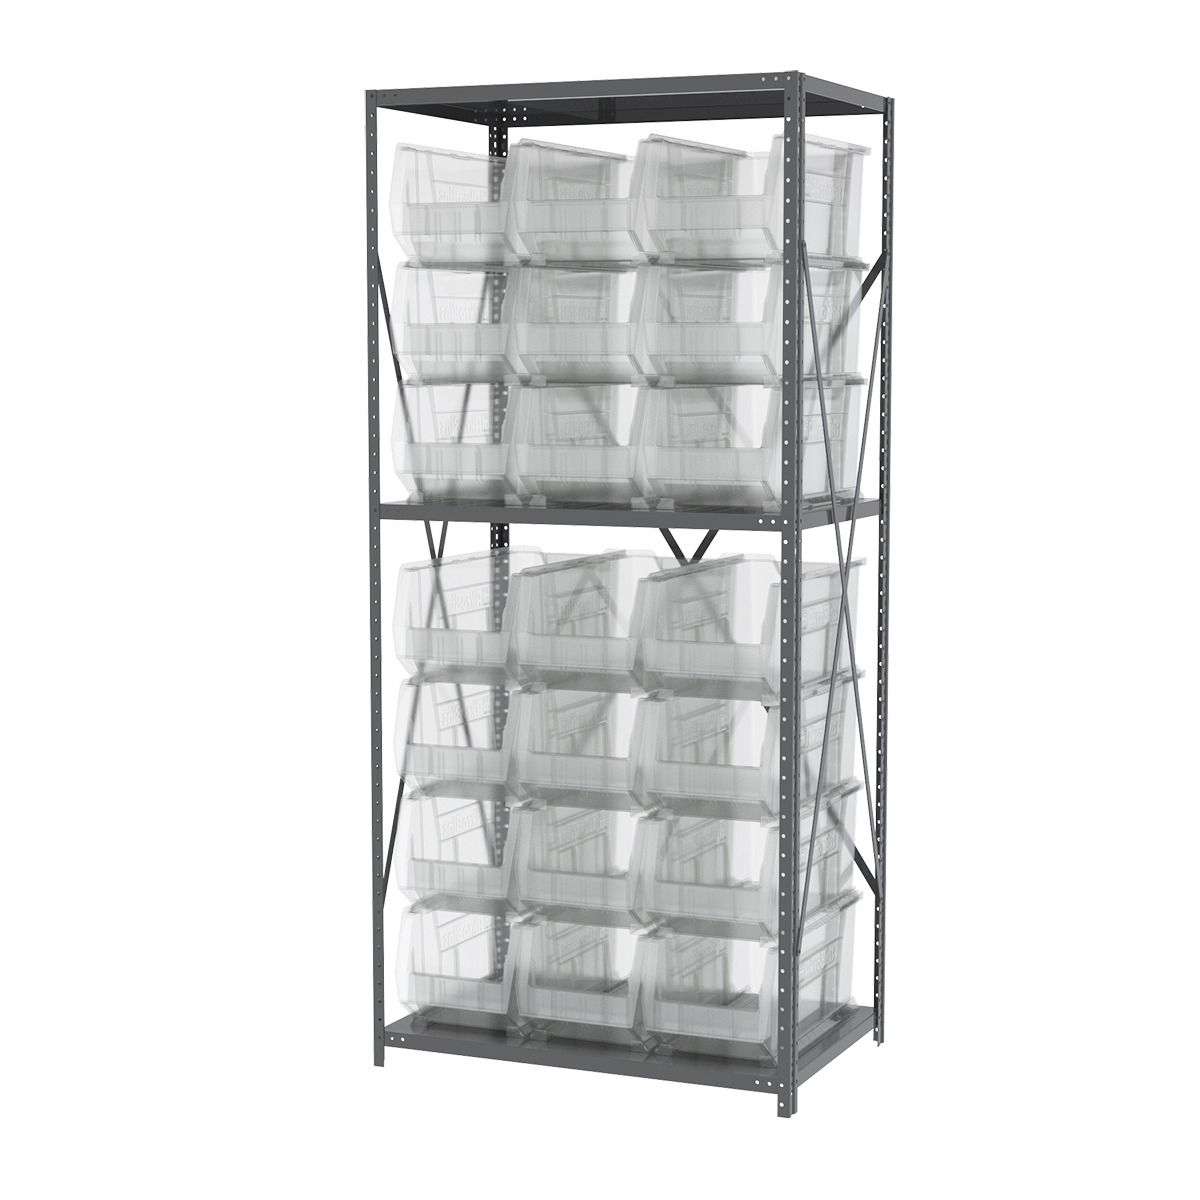 Steel Shelving Kit, 24x36x79, 24 Bins, Gray/Clear.  This item sold in carton quantities of 1.